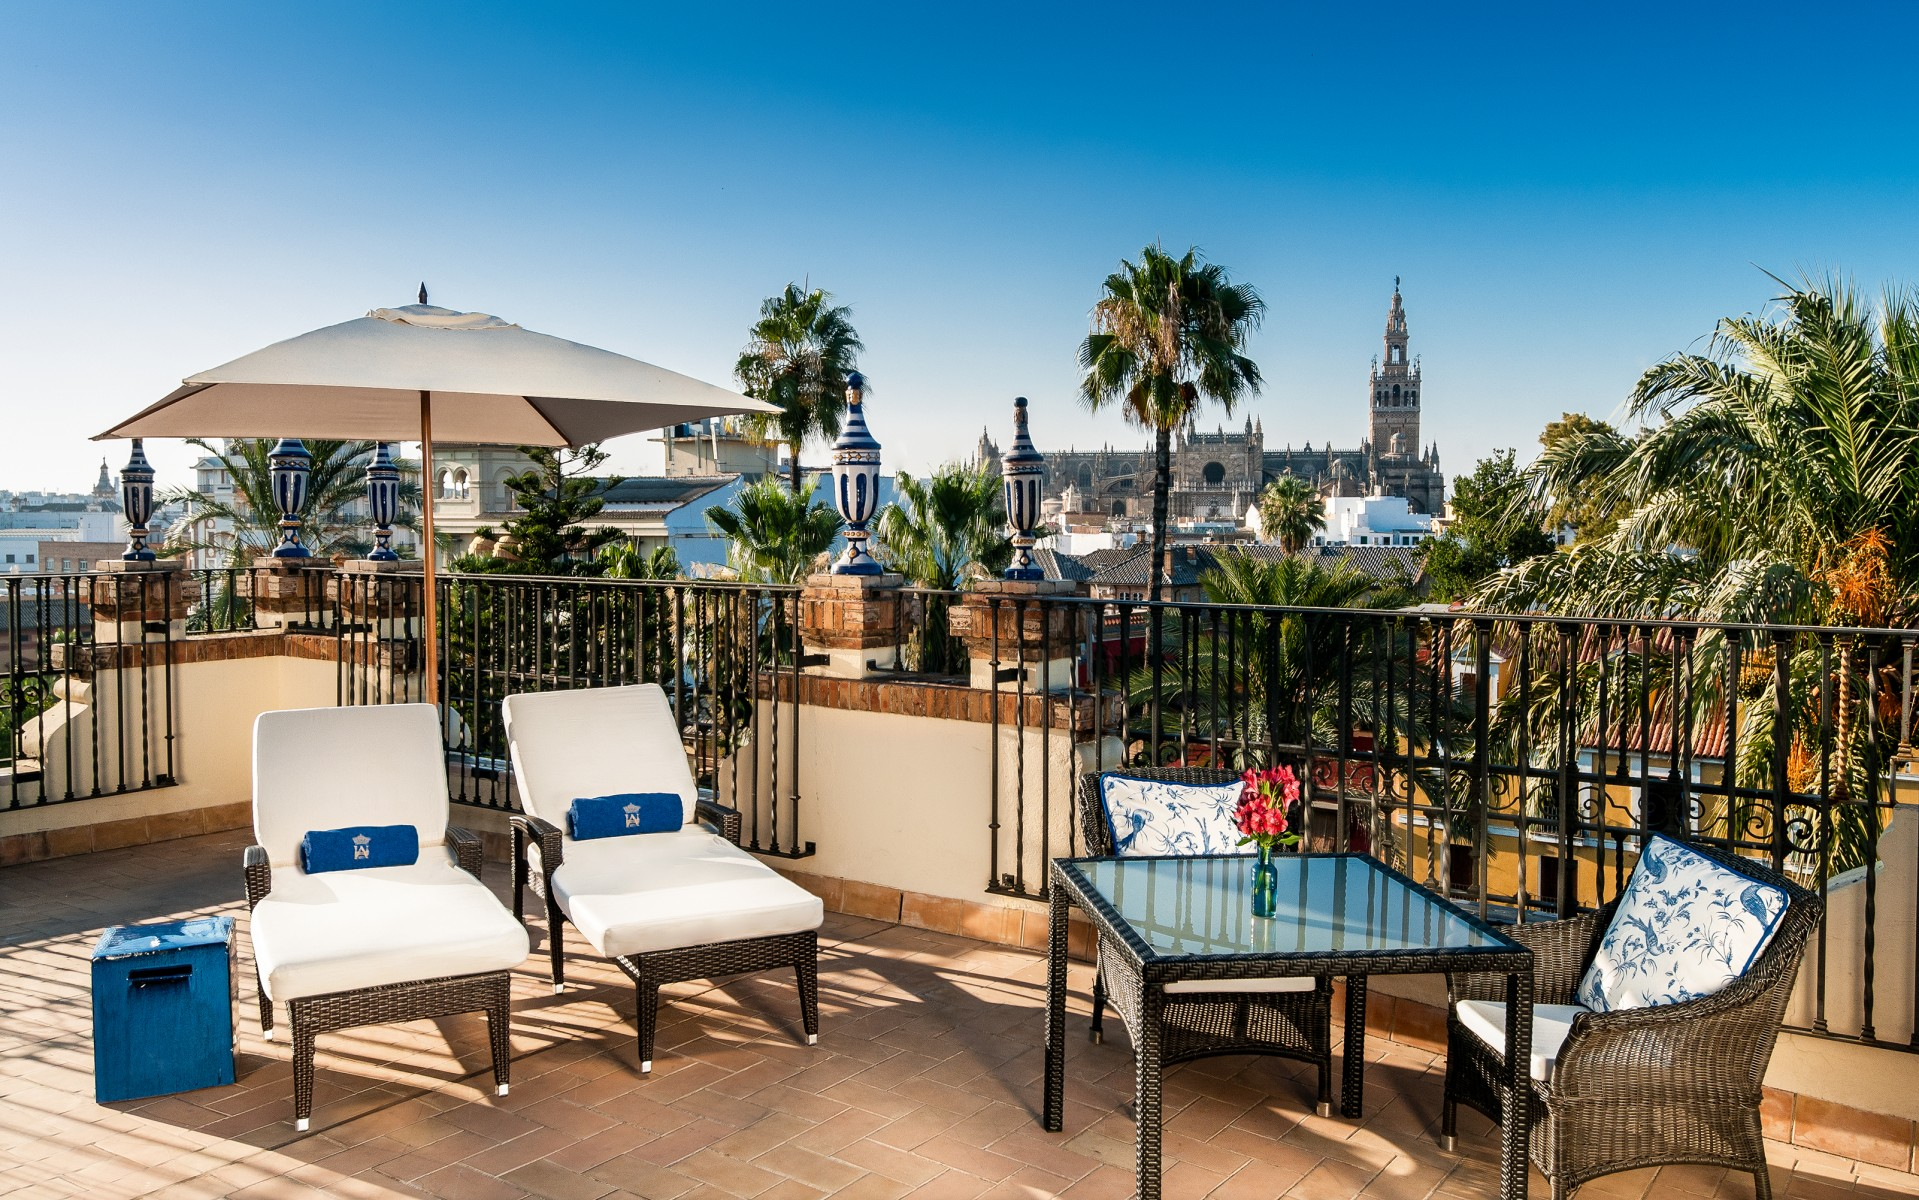 Hotel Alfonso XIII - A Luxury Collection Hotel 2